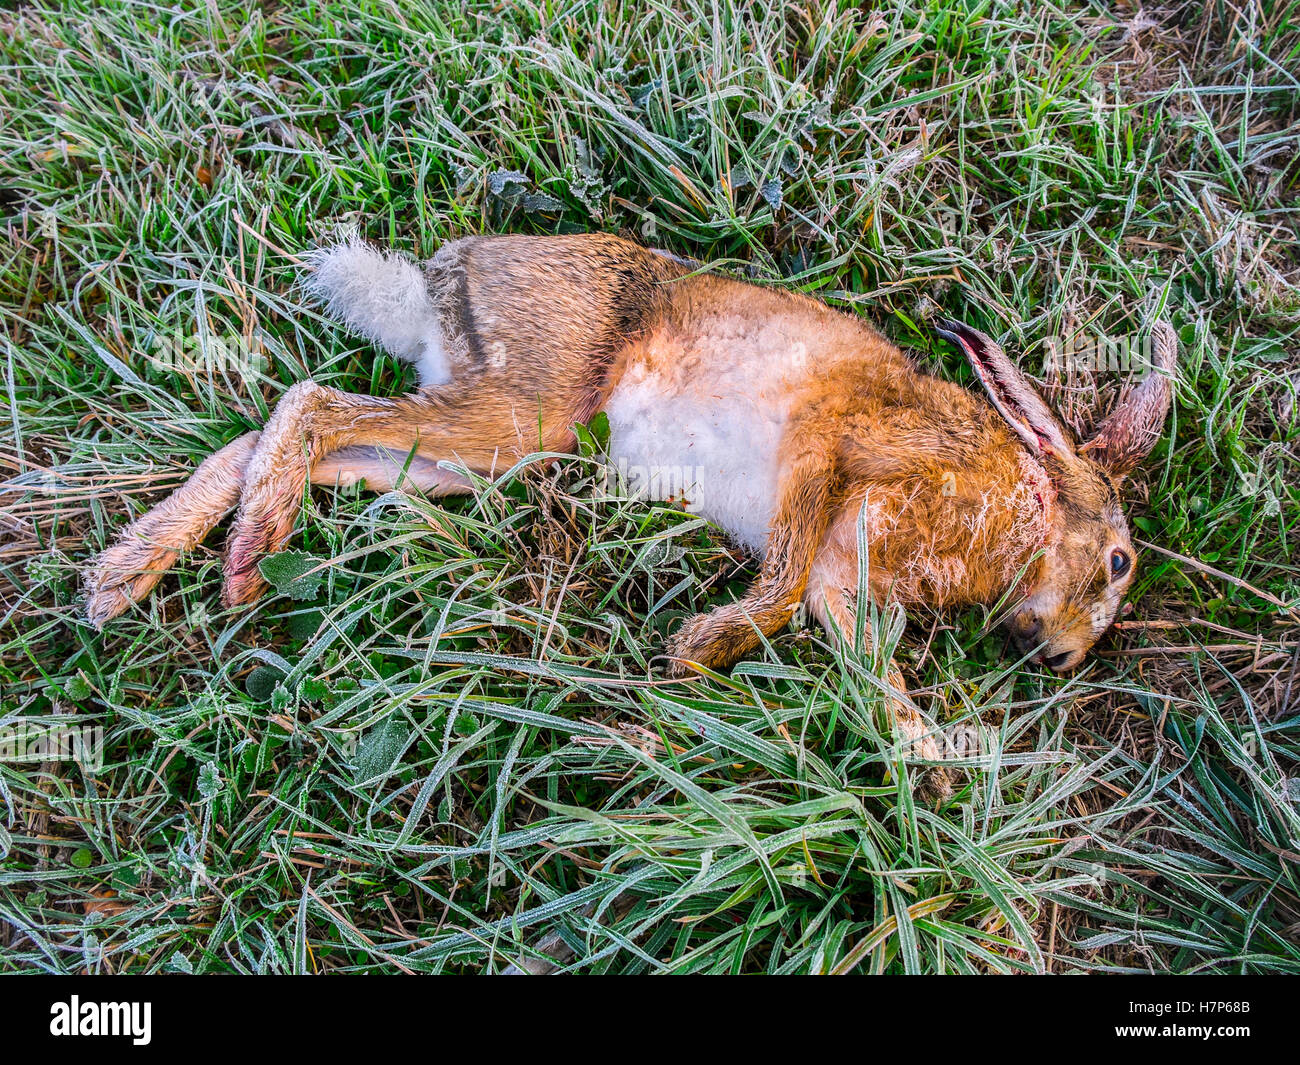 Dead Hare on roadside verge / accident victim - France. - Stock Image